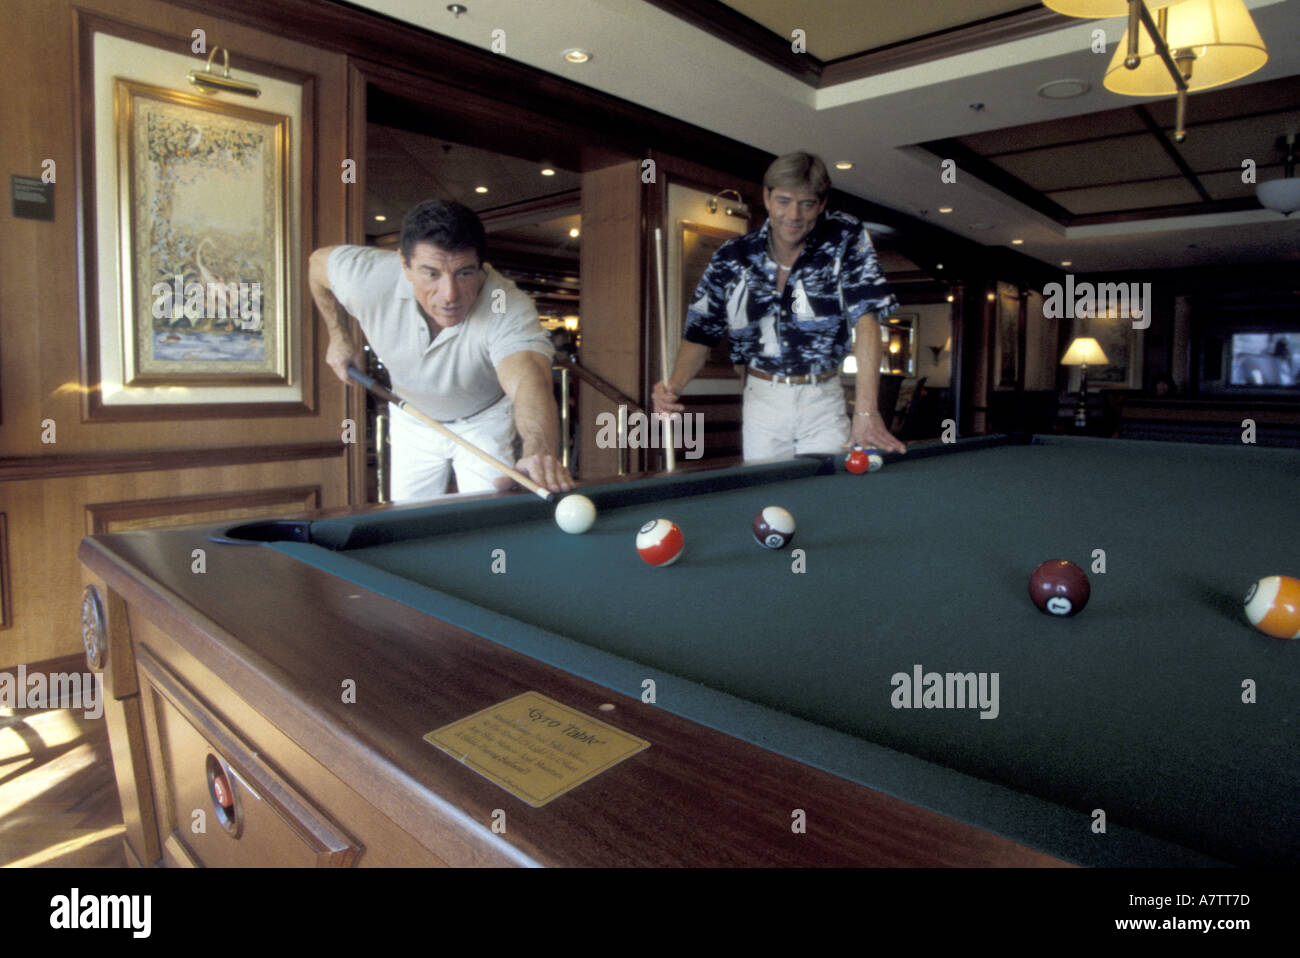 Gyroscopestabalized Pool Table Aboard RCL Radiance Of The Seas - Cruise ship pool table